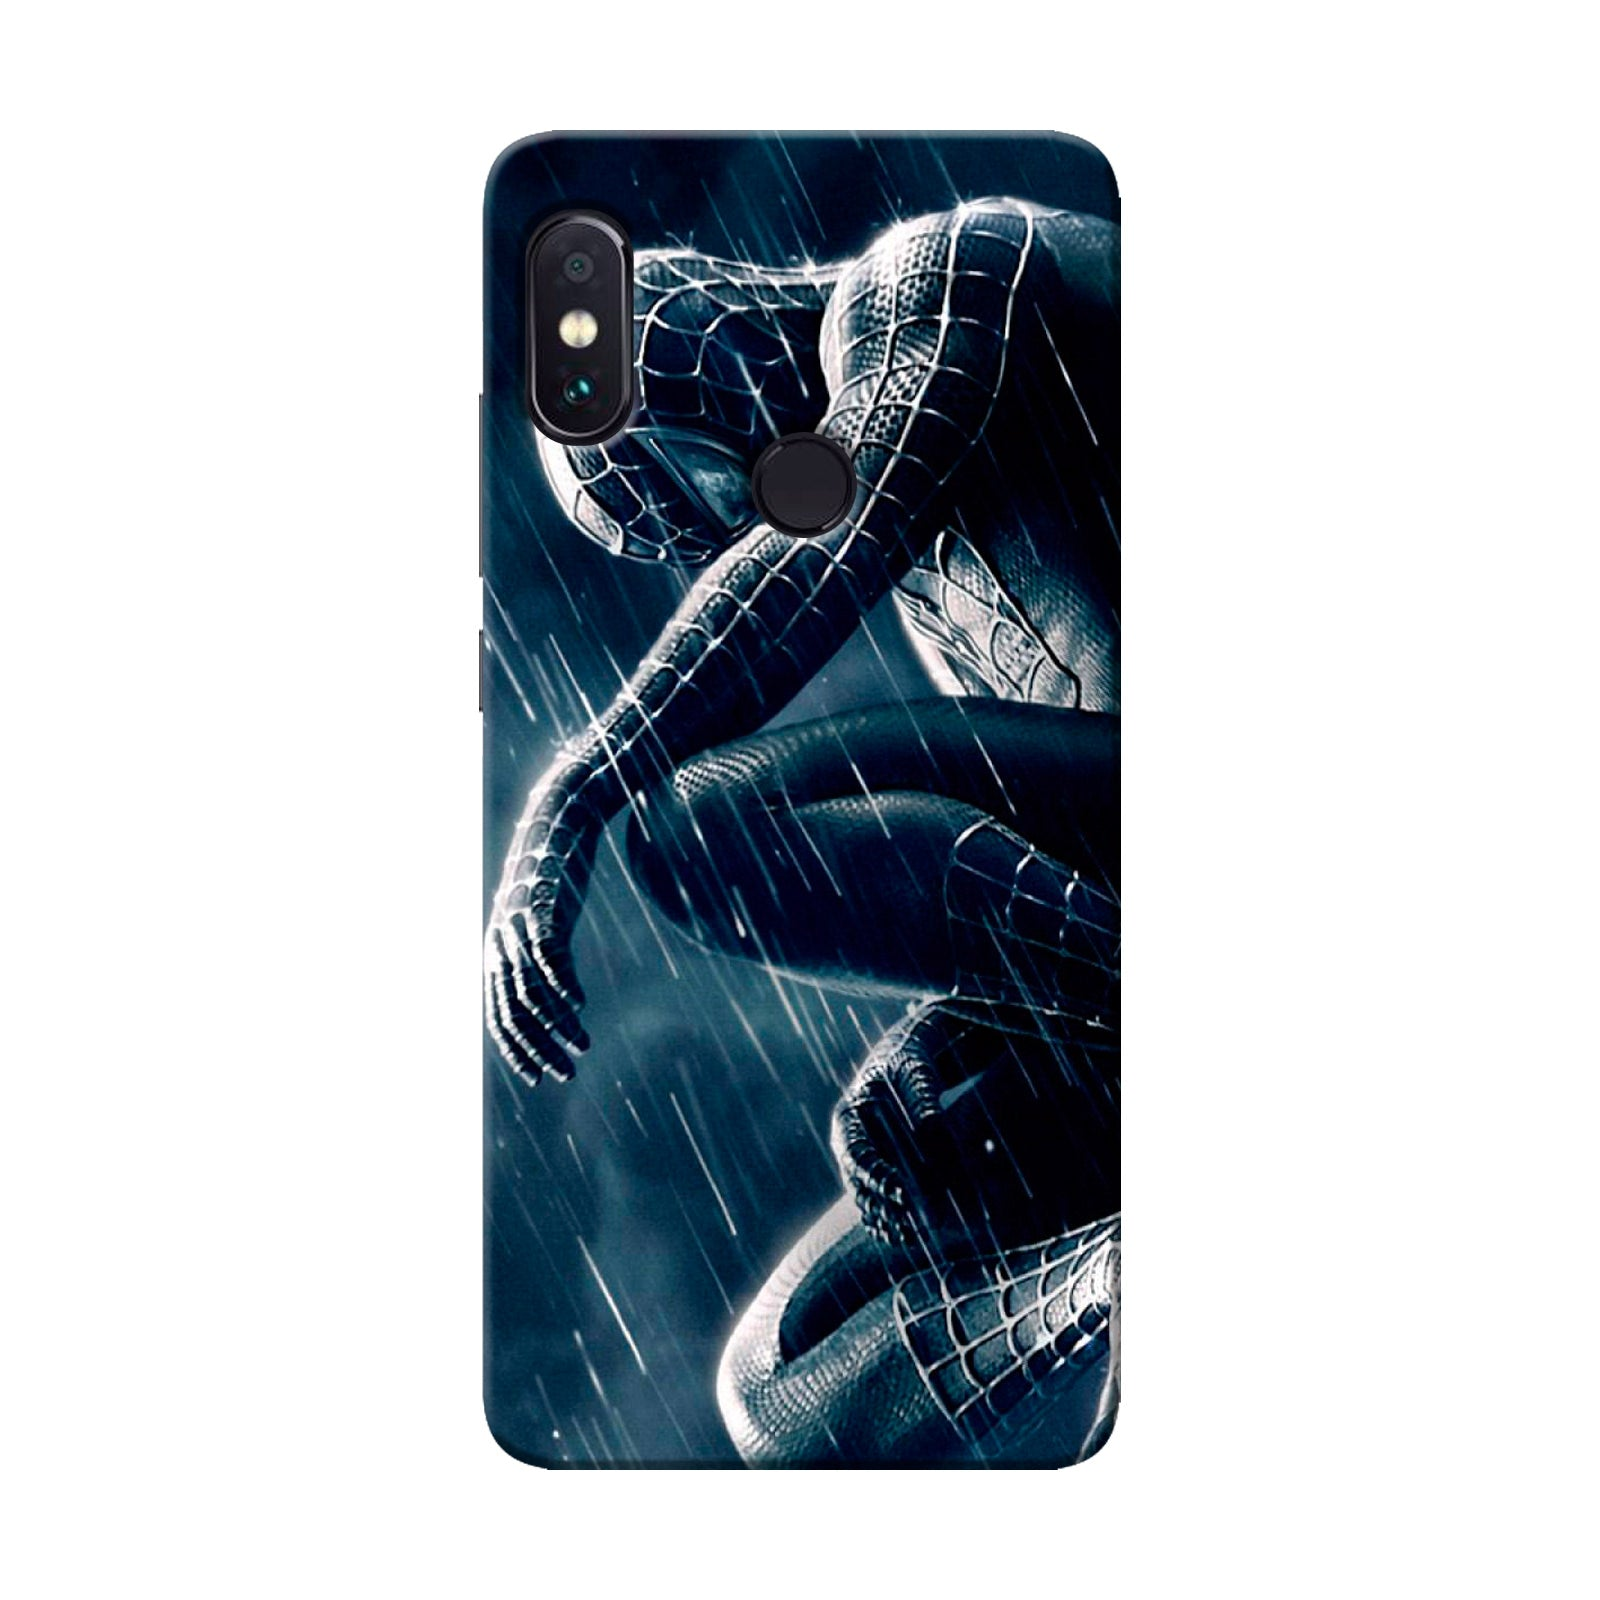 a9430f509c3 Mi Note 5 Pro Mobile Cover - Mi Note 5 Pro Printed Mobile Bumper Back Case  ...